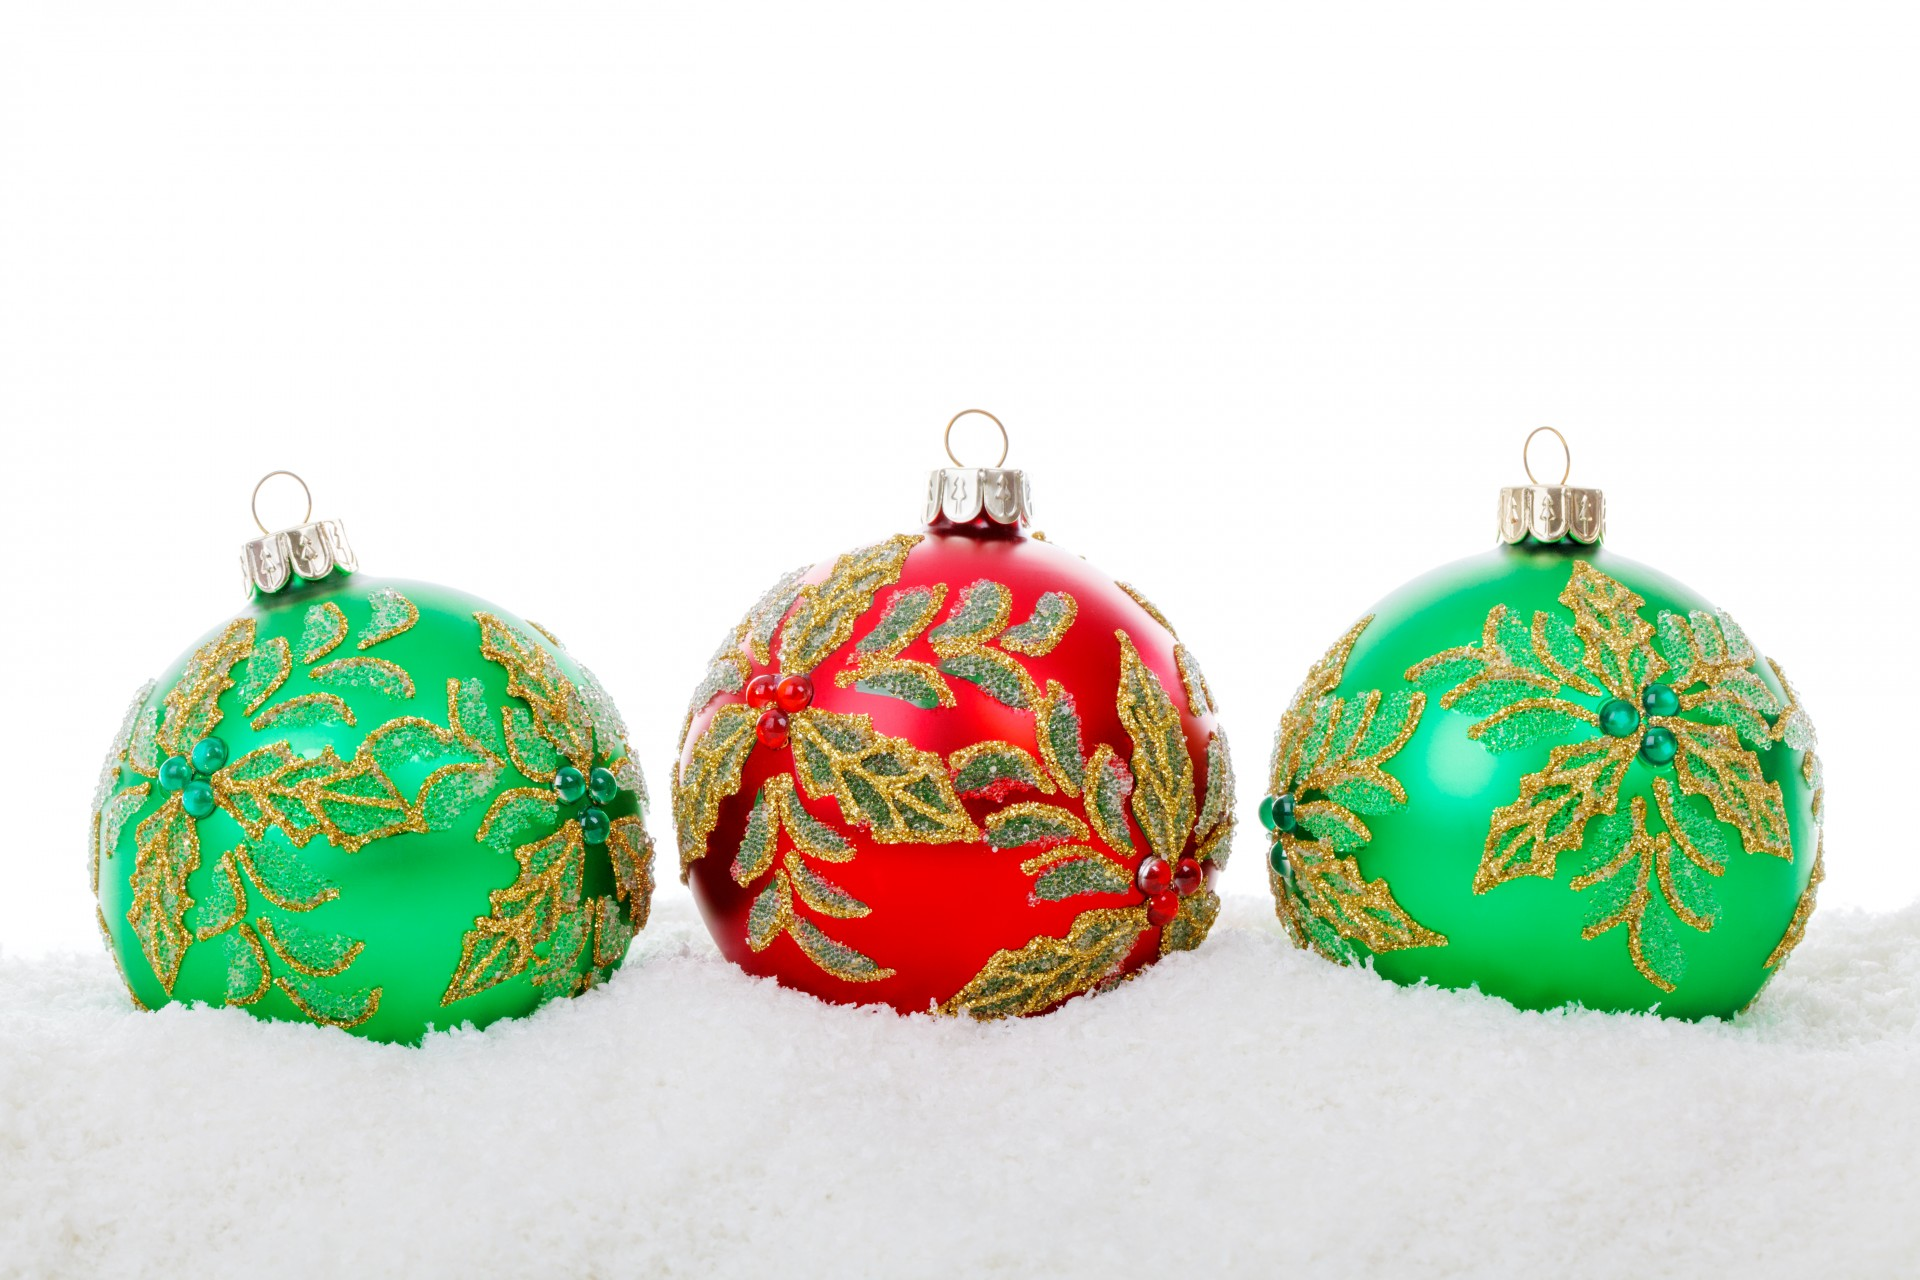 Red Green Christmas Balls Free Stock Photo - Public Domain Pictures